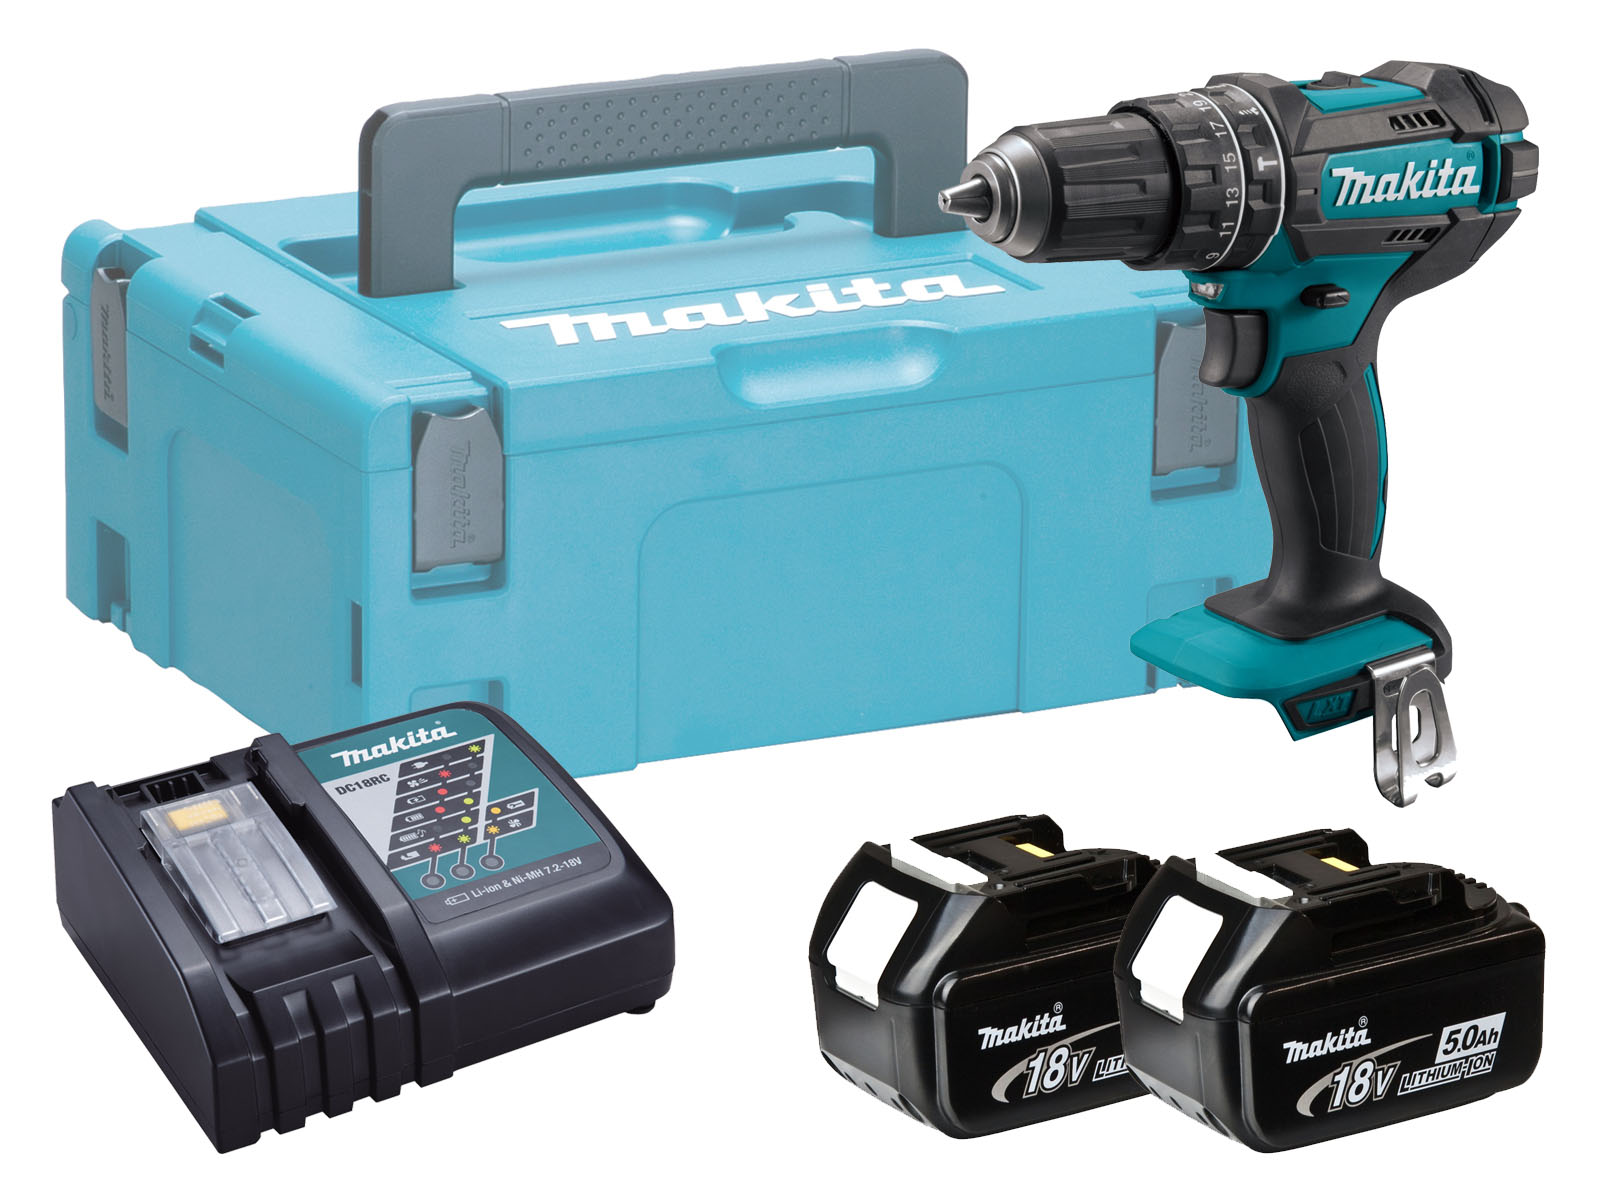 Makita DHP482 18V Combi Hammer Driver Drill Brushed - 5.0ah Pack